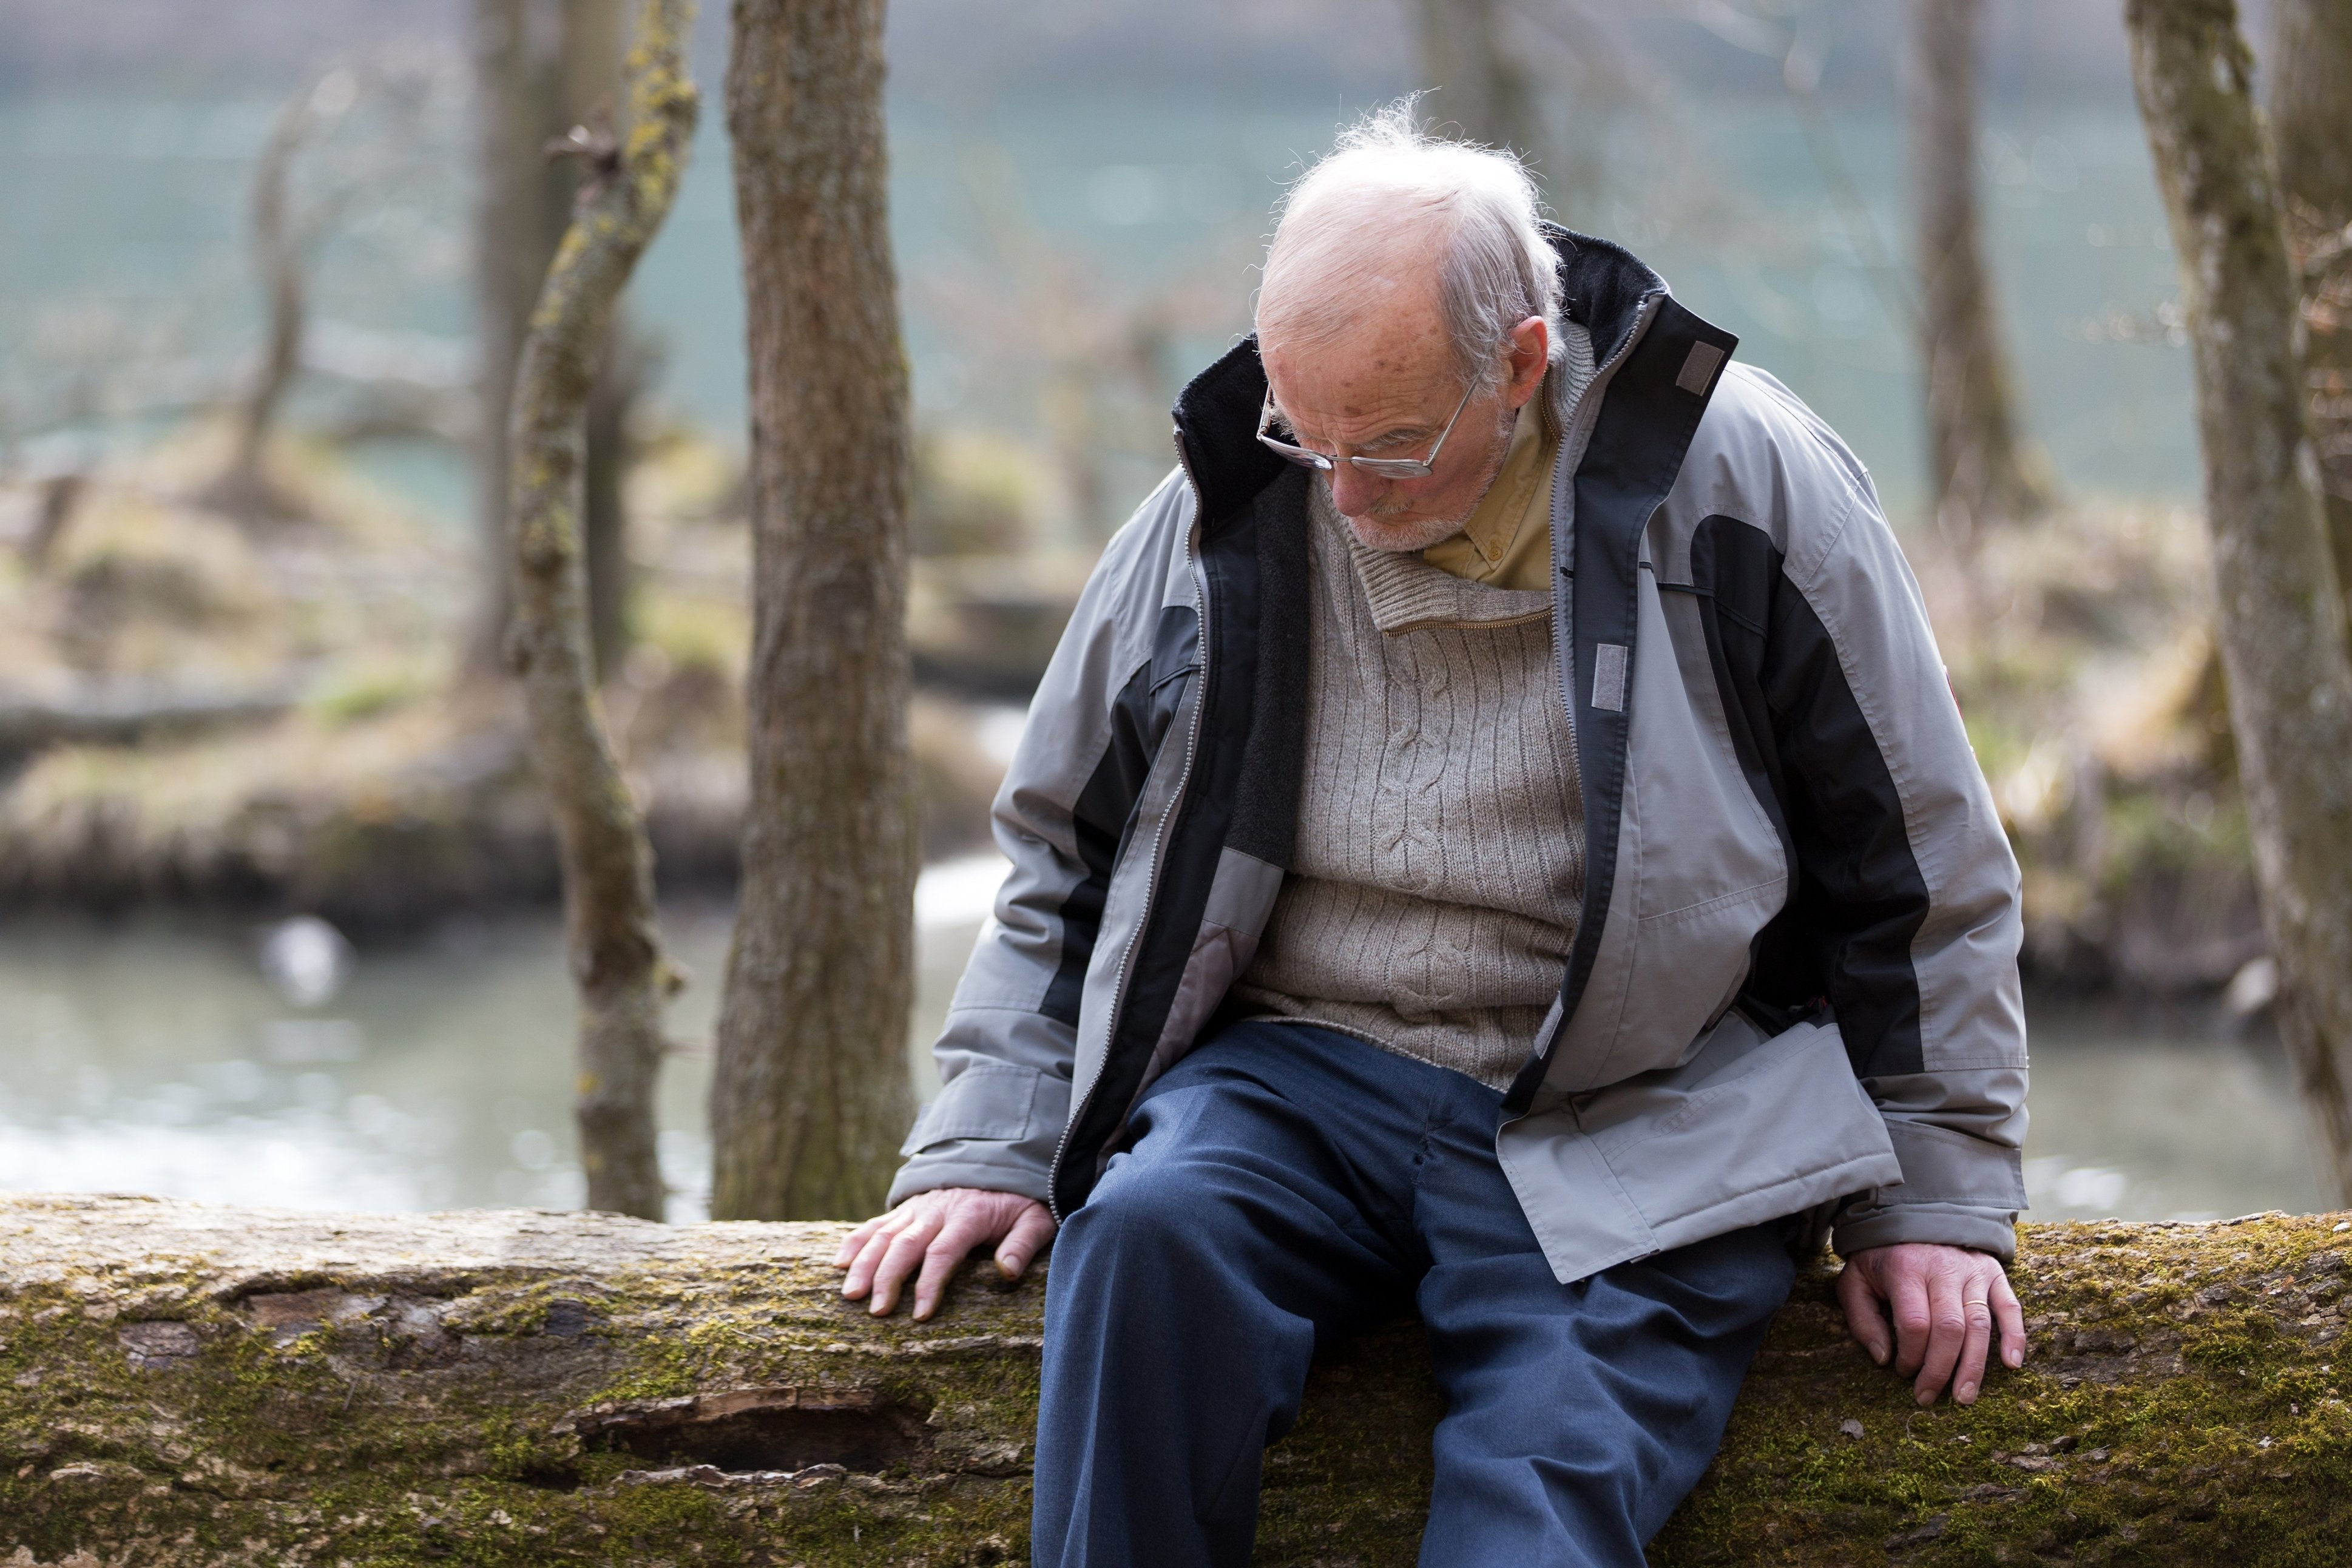 Pensive senior man sitting on tree trunk in nature | Photo: Shutterstock.com